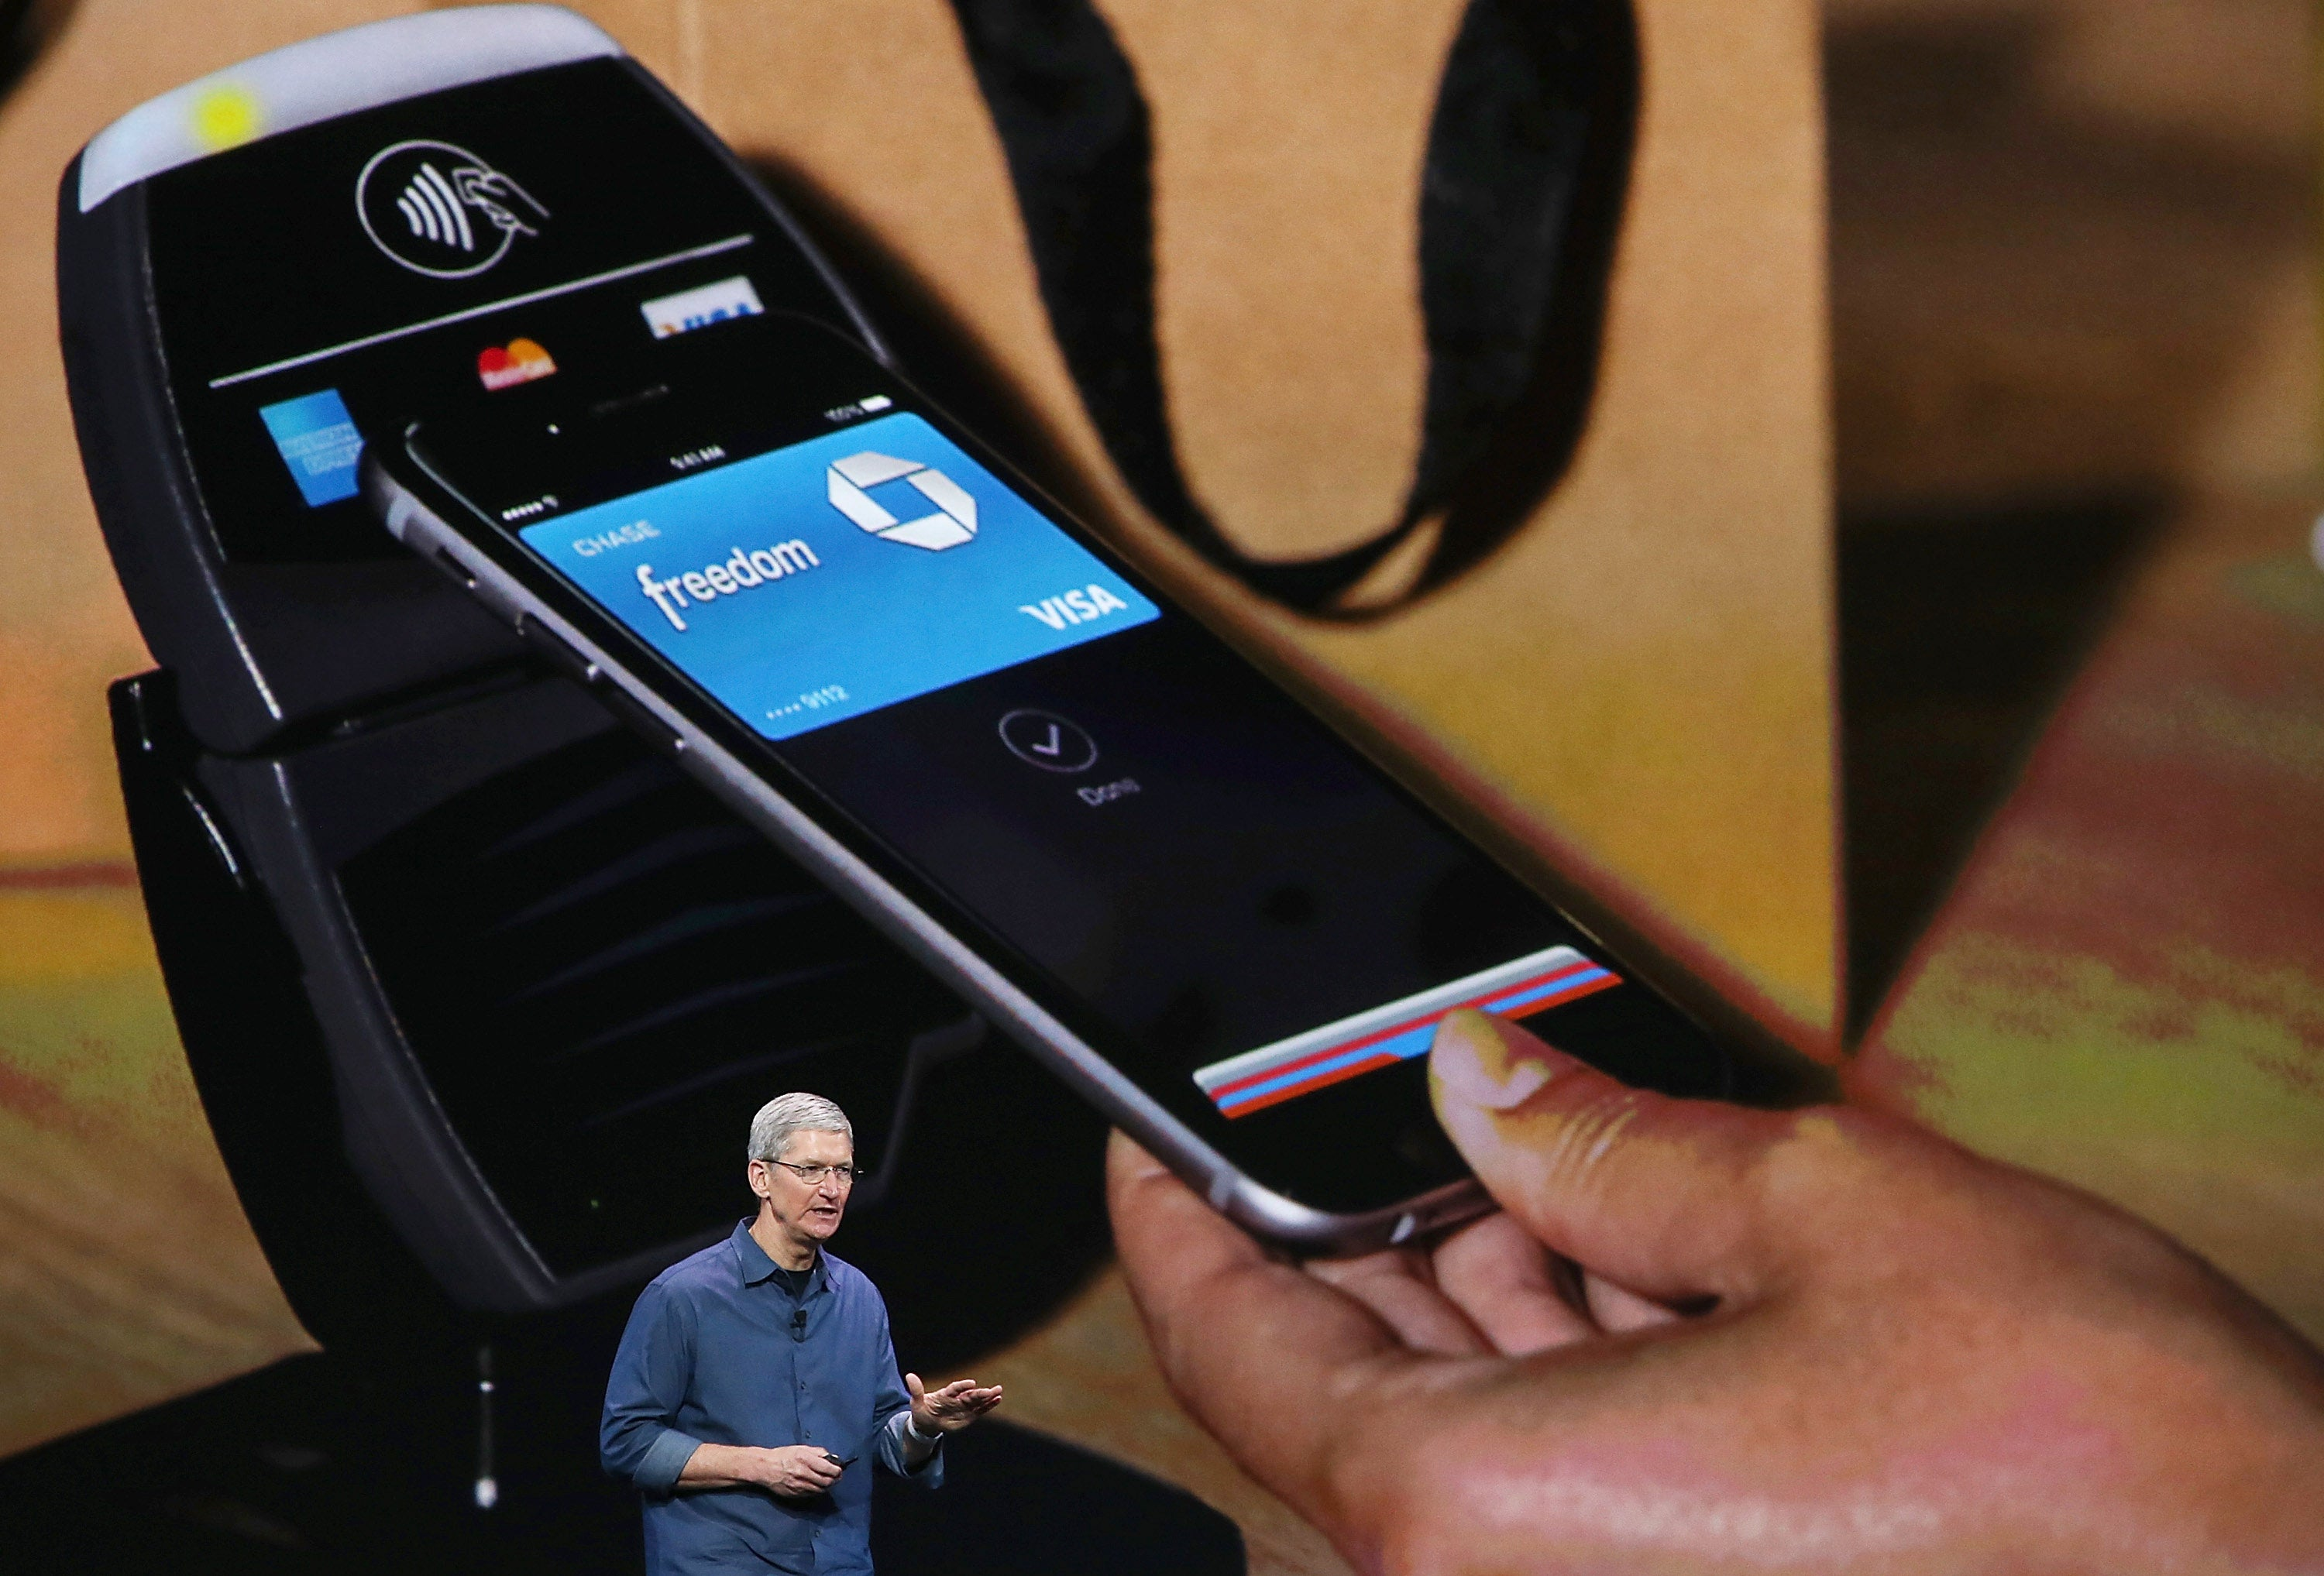 Apple Pay could launch in 2015 — if worried banks don't stop phone-based payment service